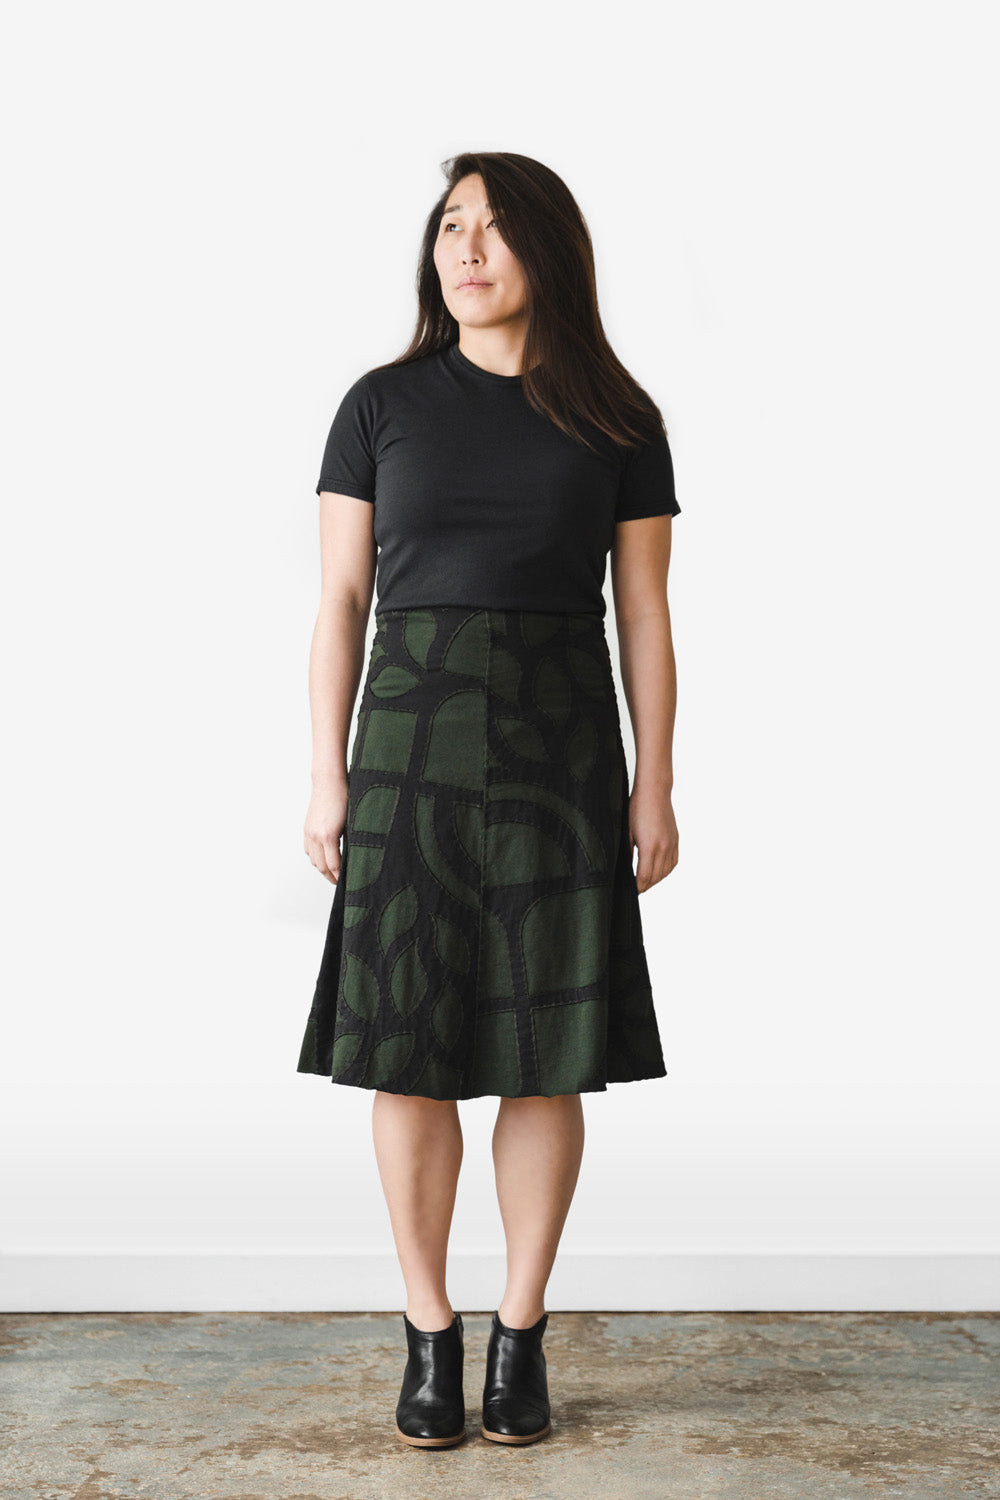 The School of Making Swing Skirt Kit Organic Cotton Abstract Pattern Black on Model